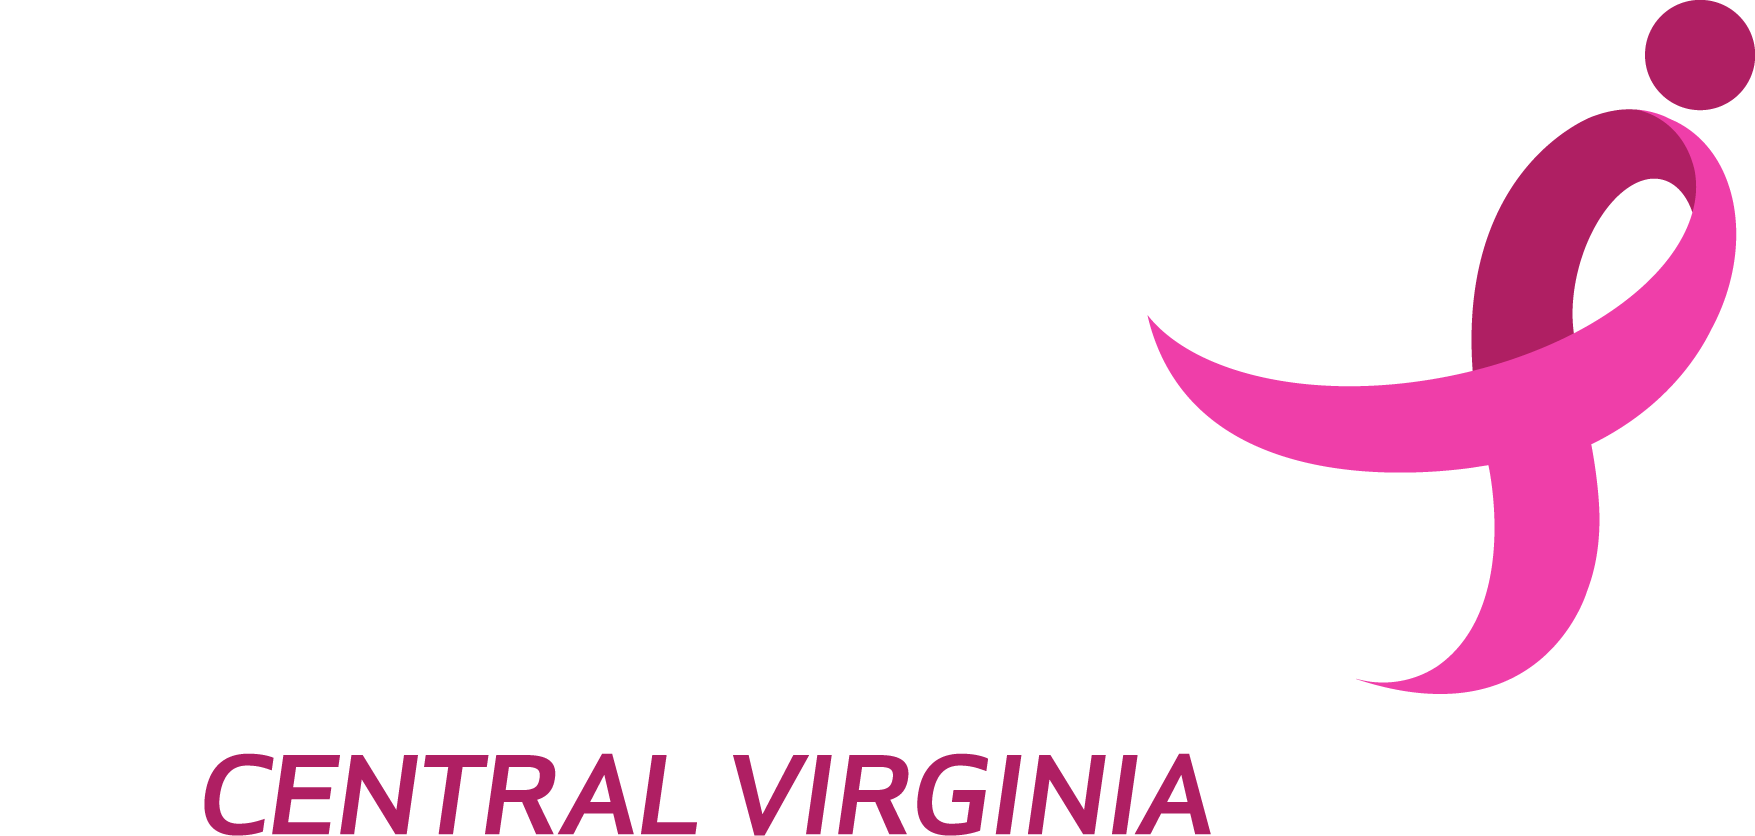 Susan G. Komen Central Virginia logo